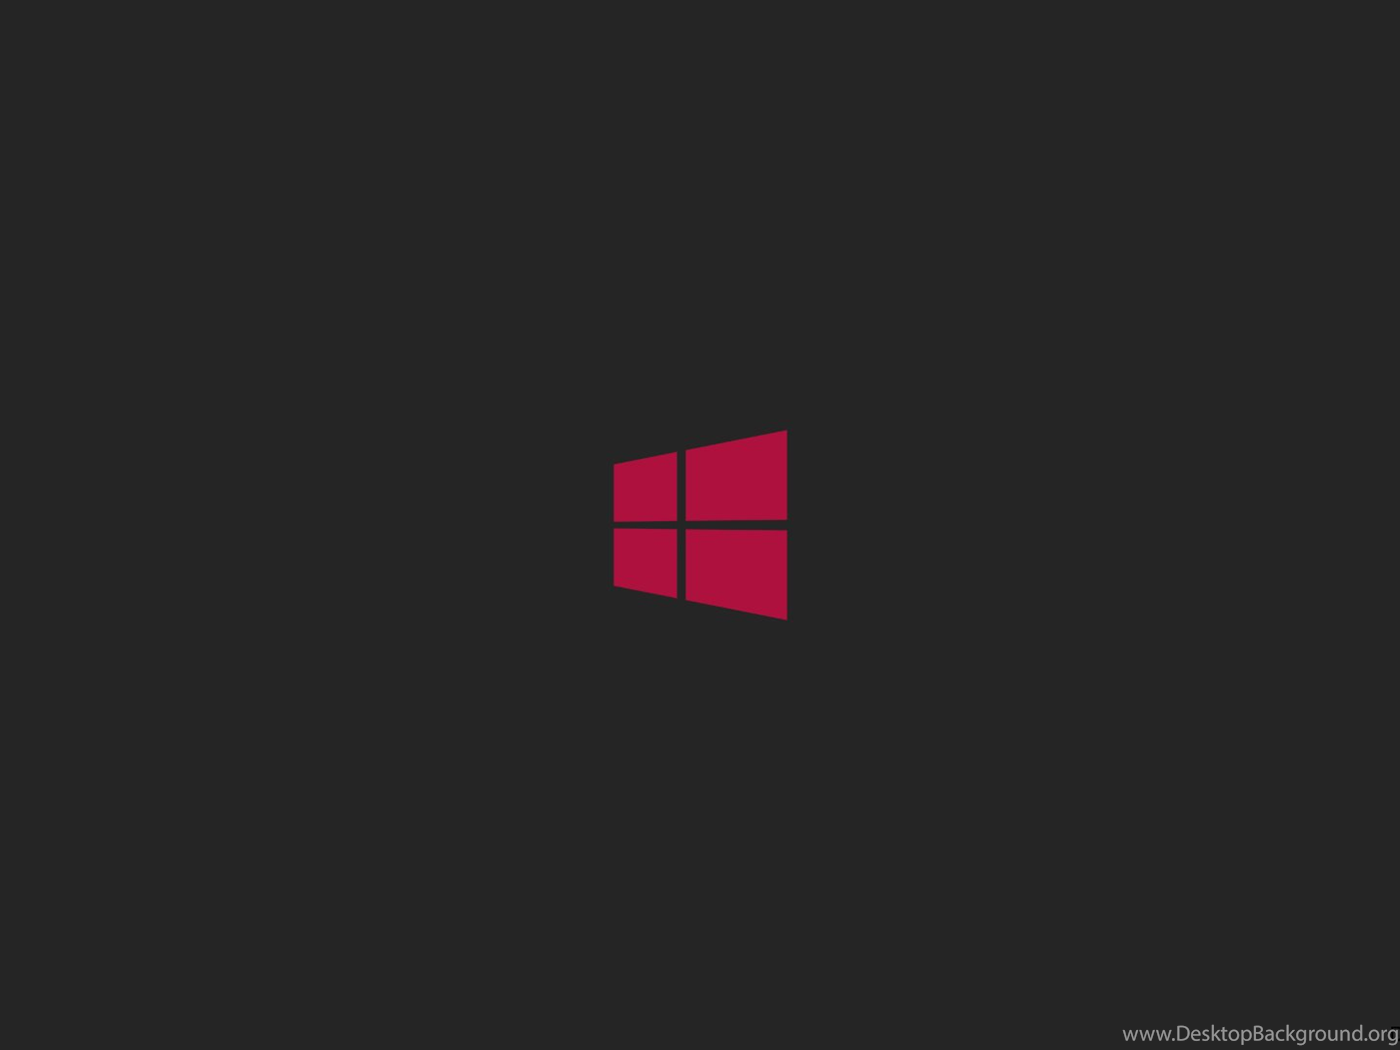 Window 8 logo hd wallpapers hd images new desktop background fullscreen thecheapjerseys Gallery